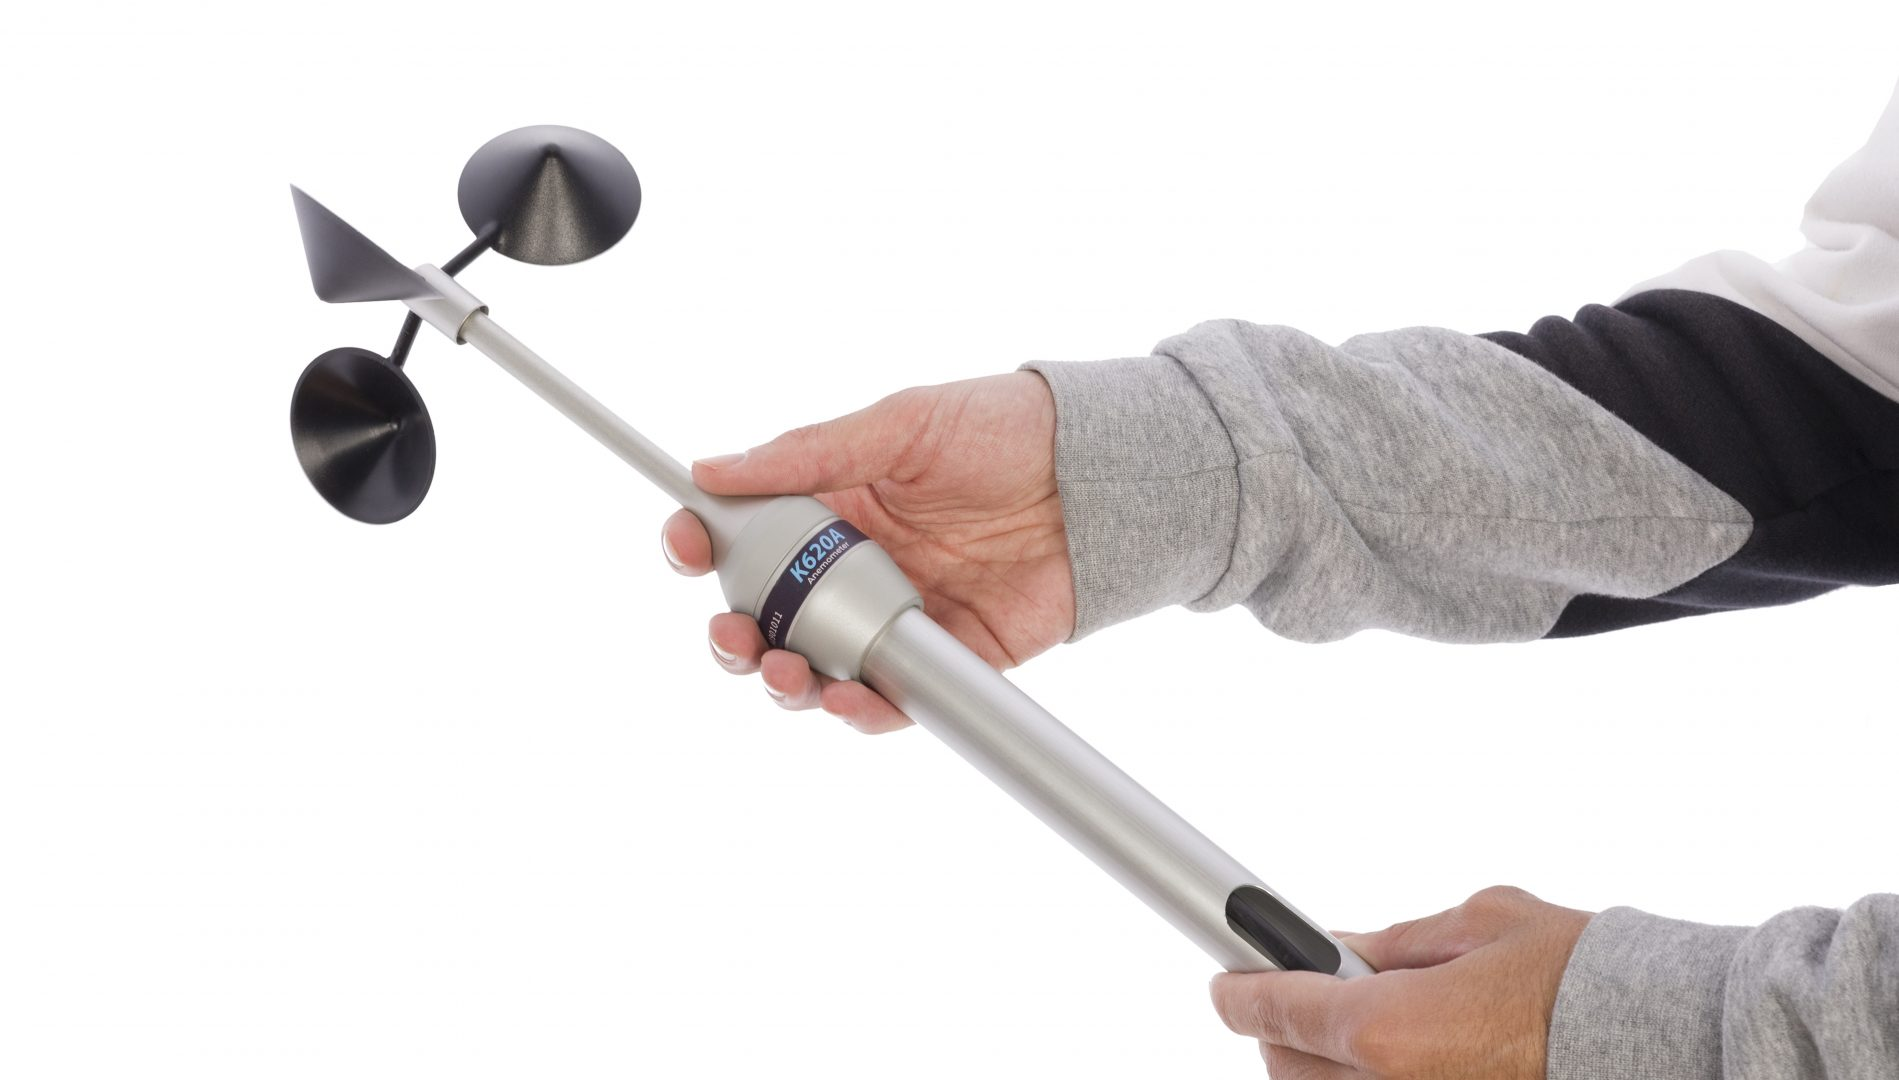 Say Hello to the K620A Cup Anemometer!